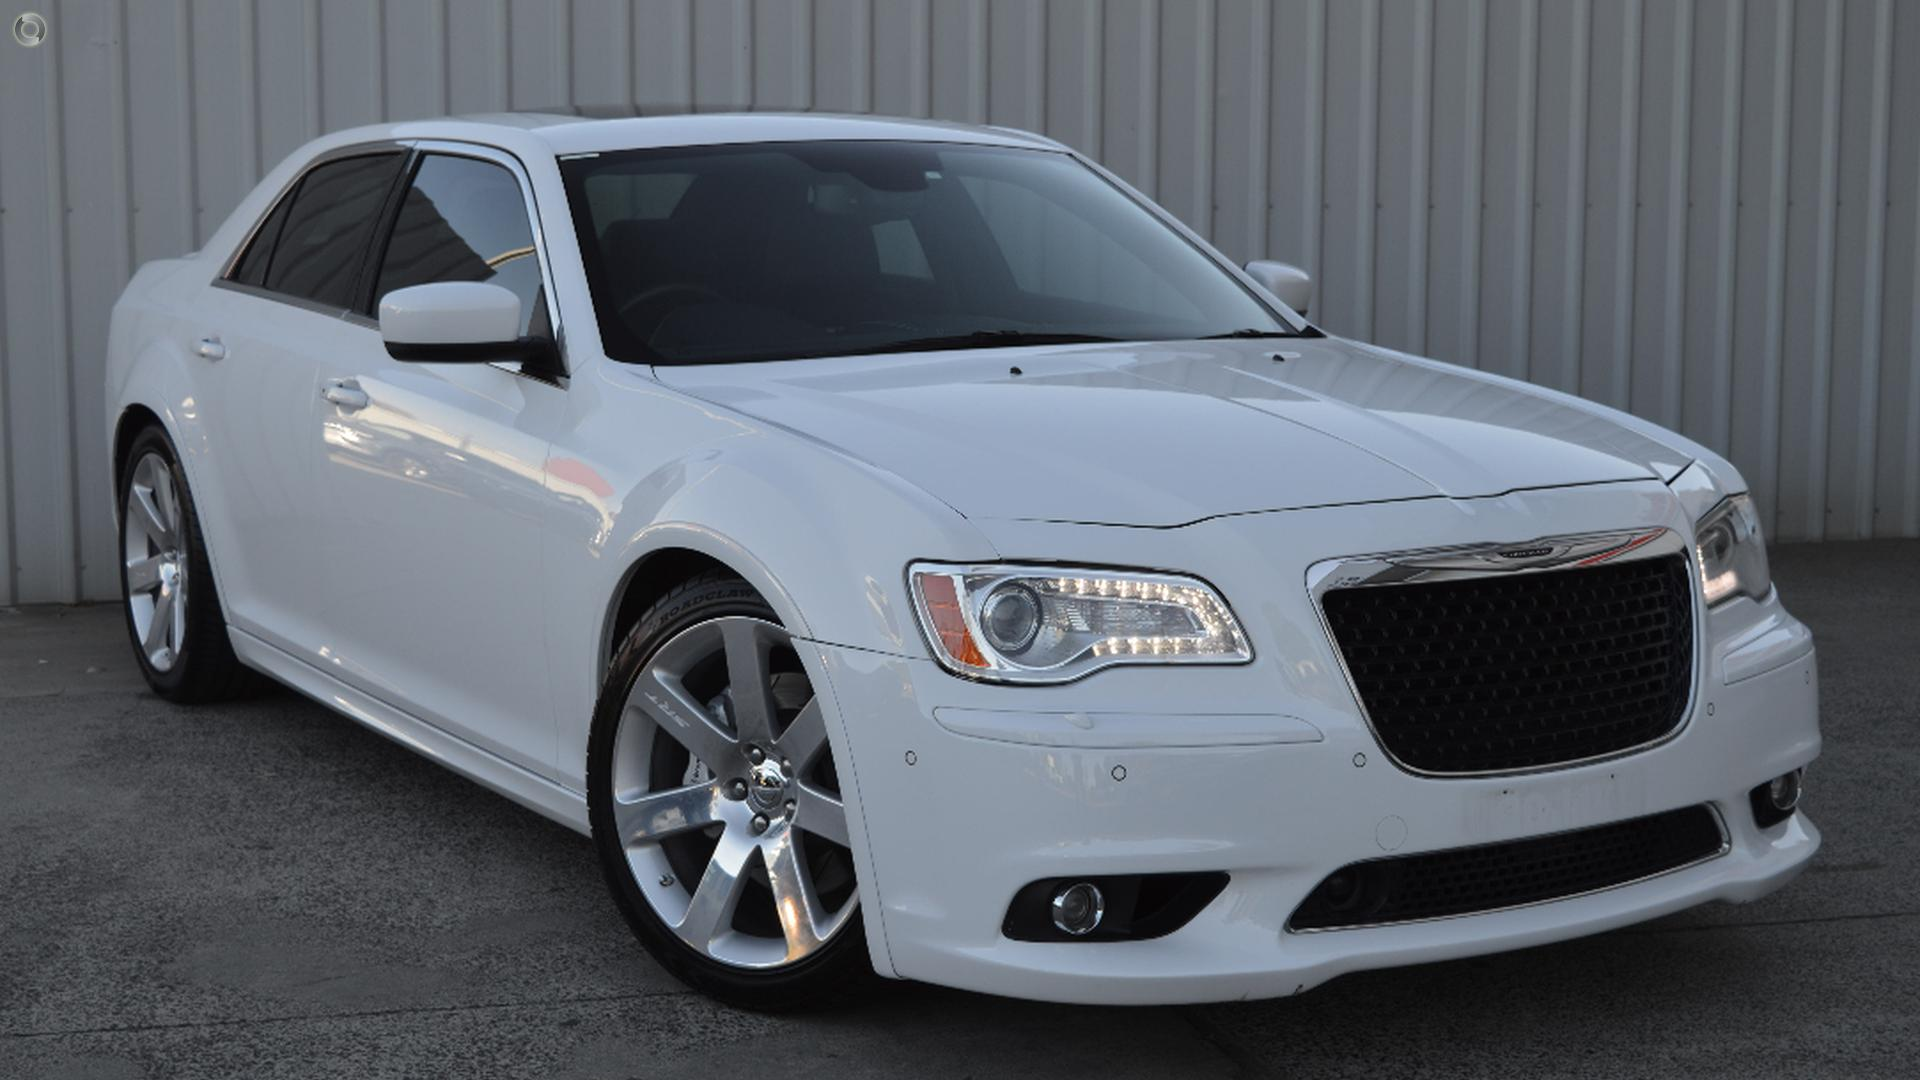 2012 Chrysler 300 SRT-8 LX